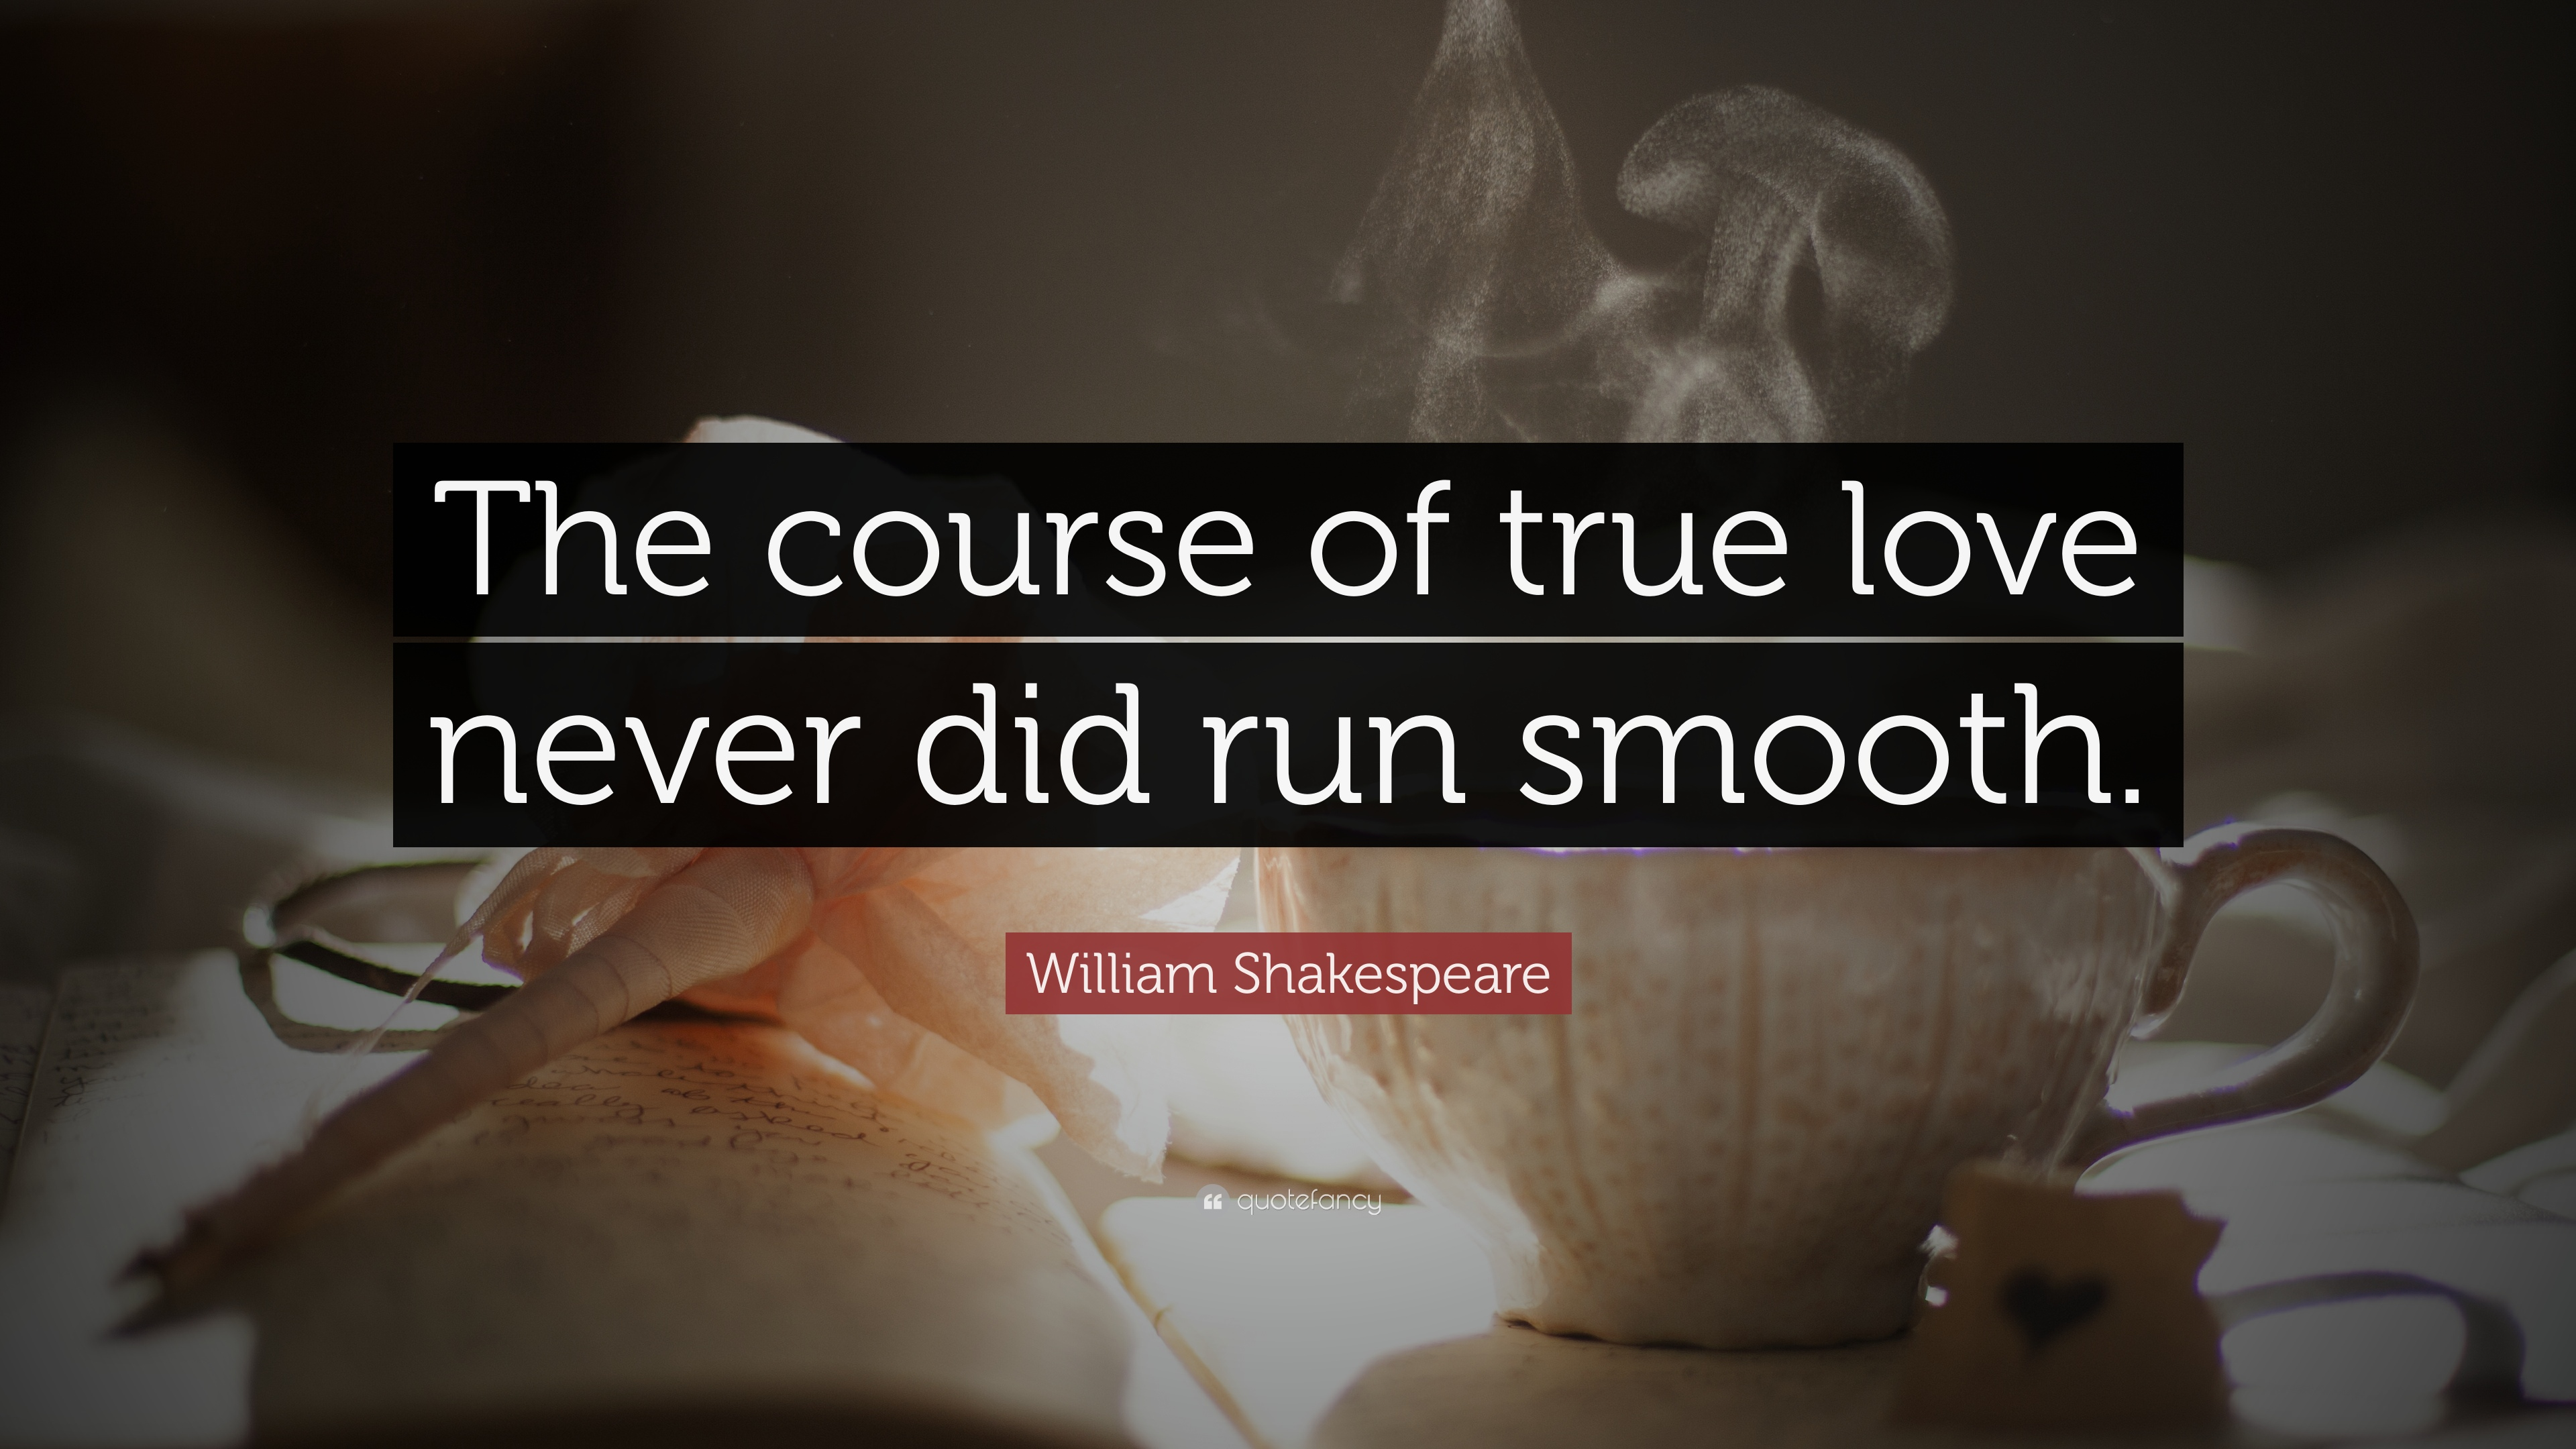 The course of true love never did run smooth essay